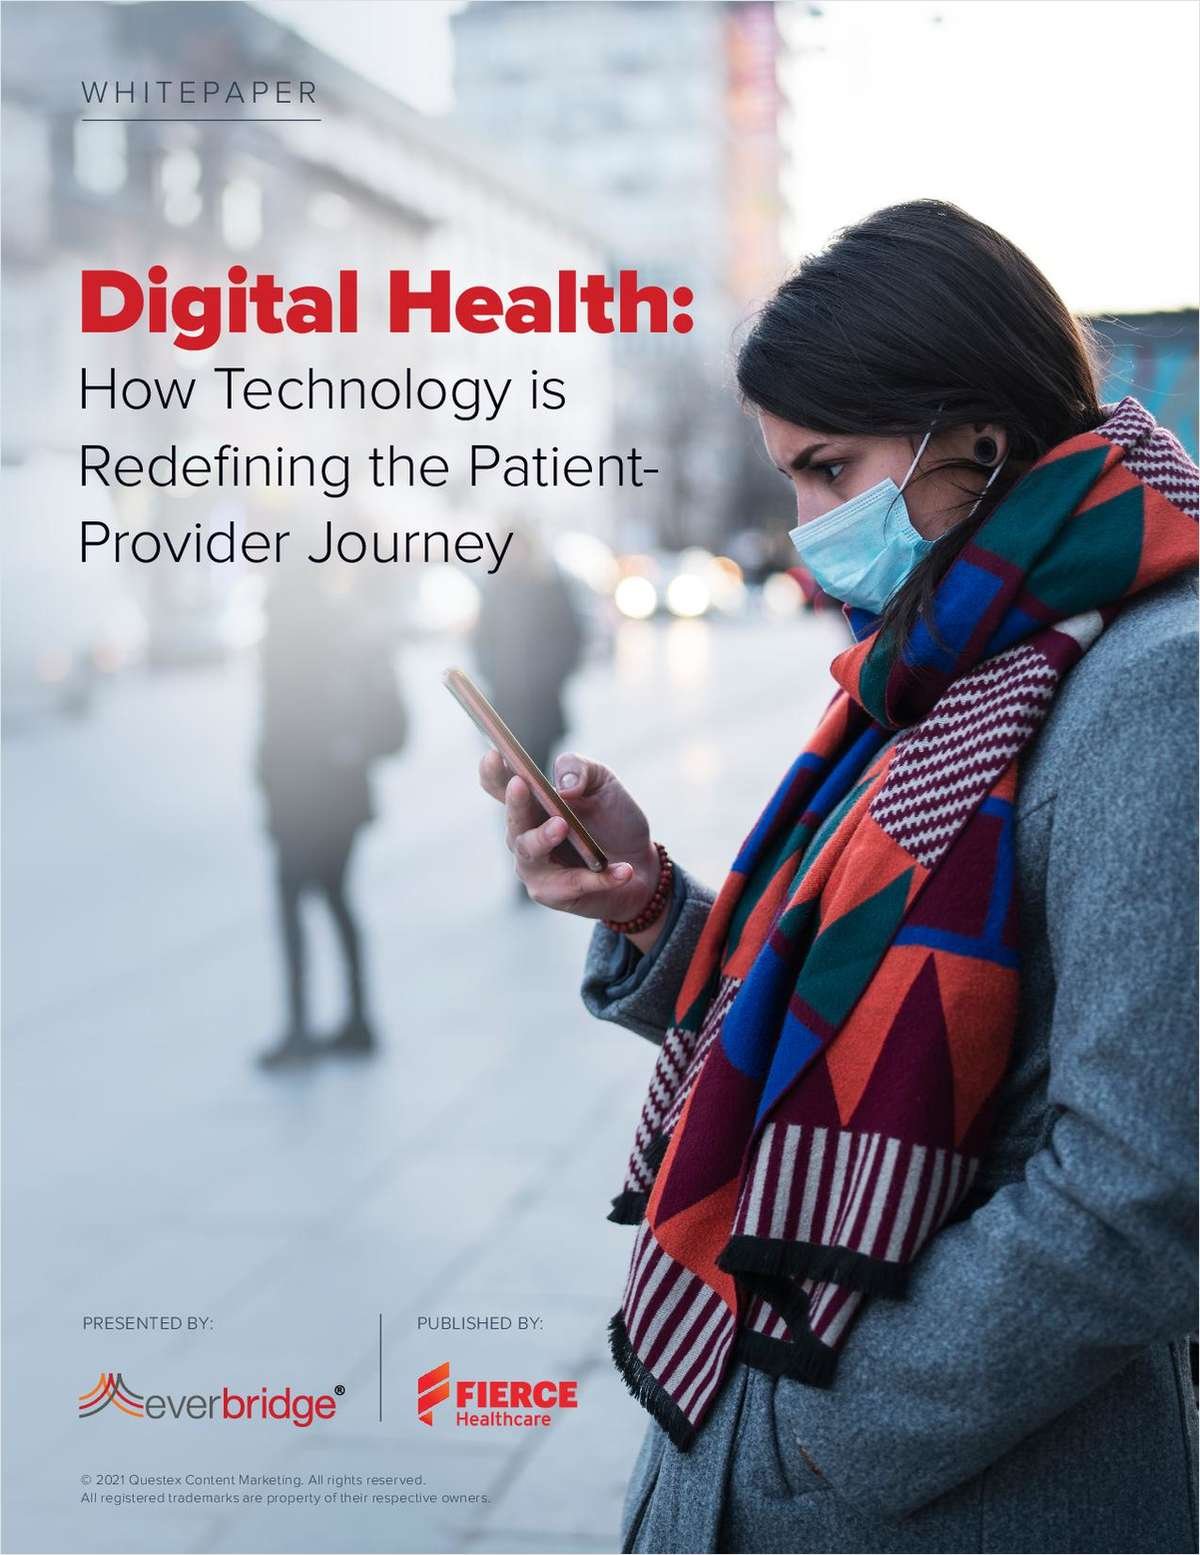 Digital Health: How Technology is Redefining the Patient-Provider Journey